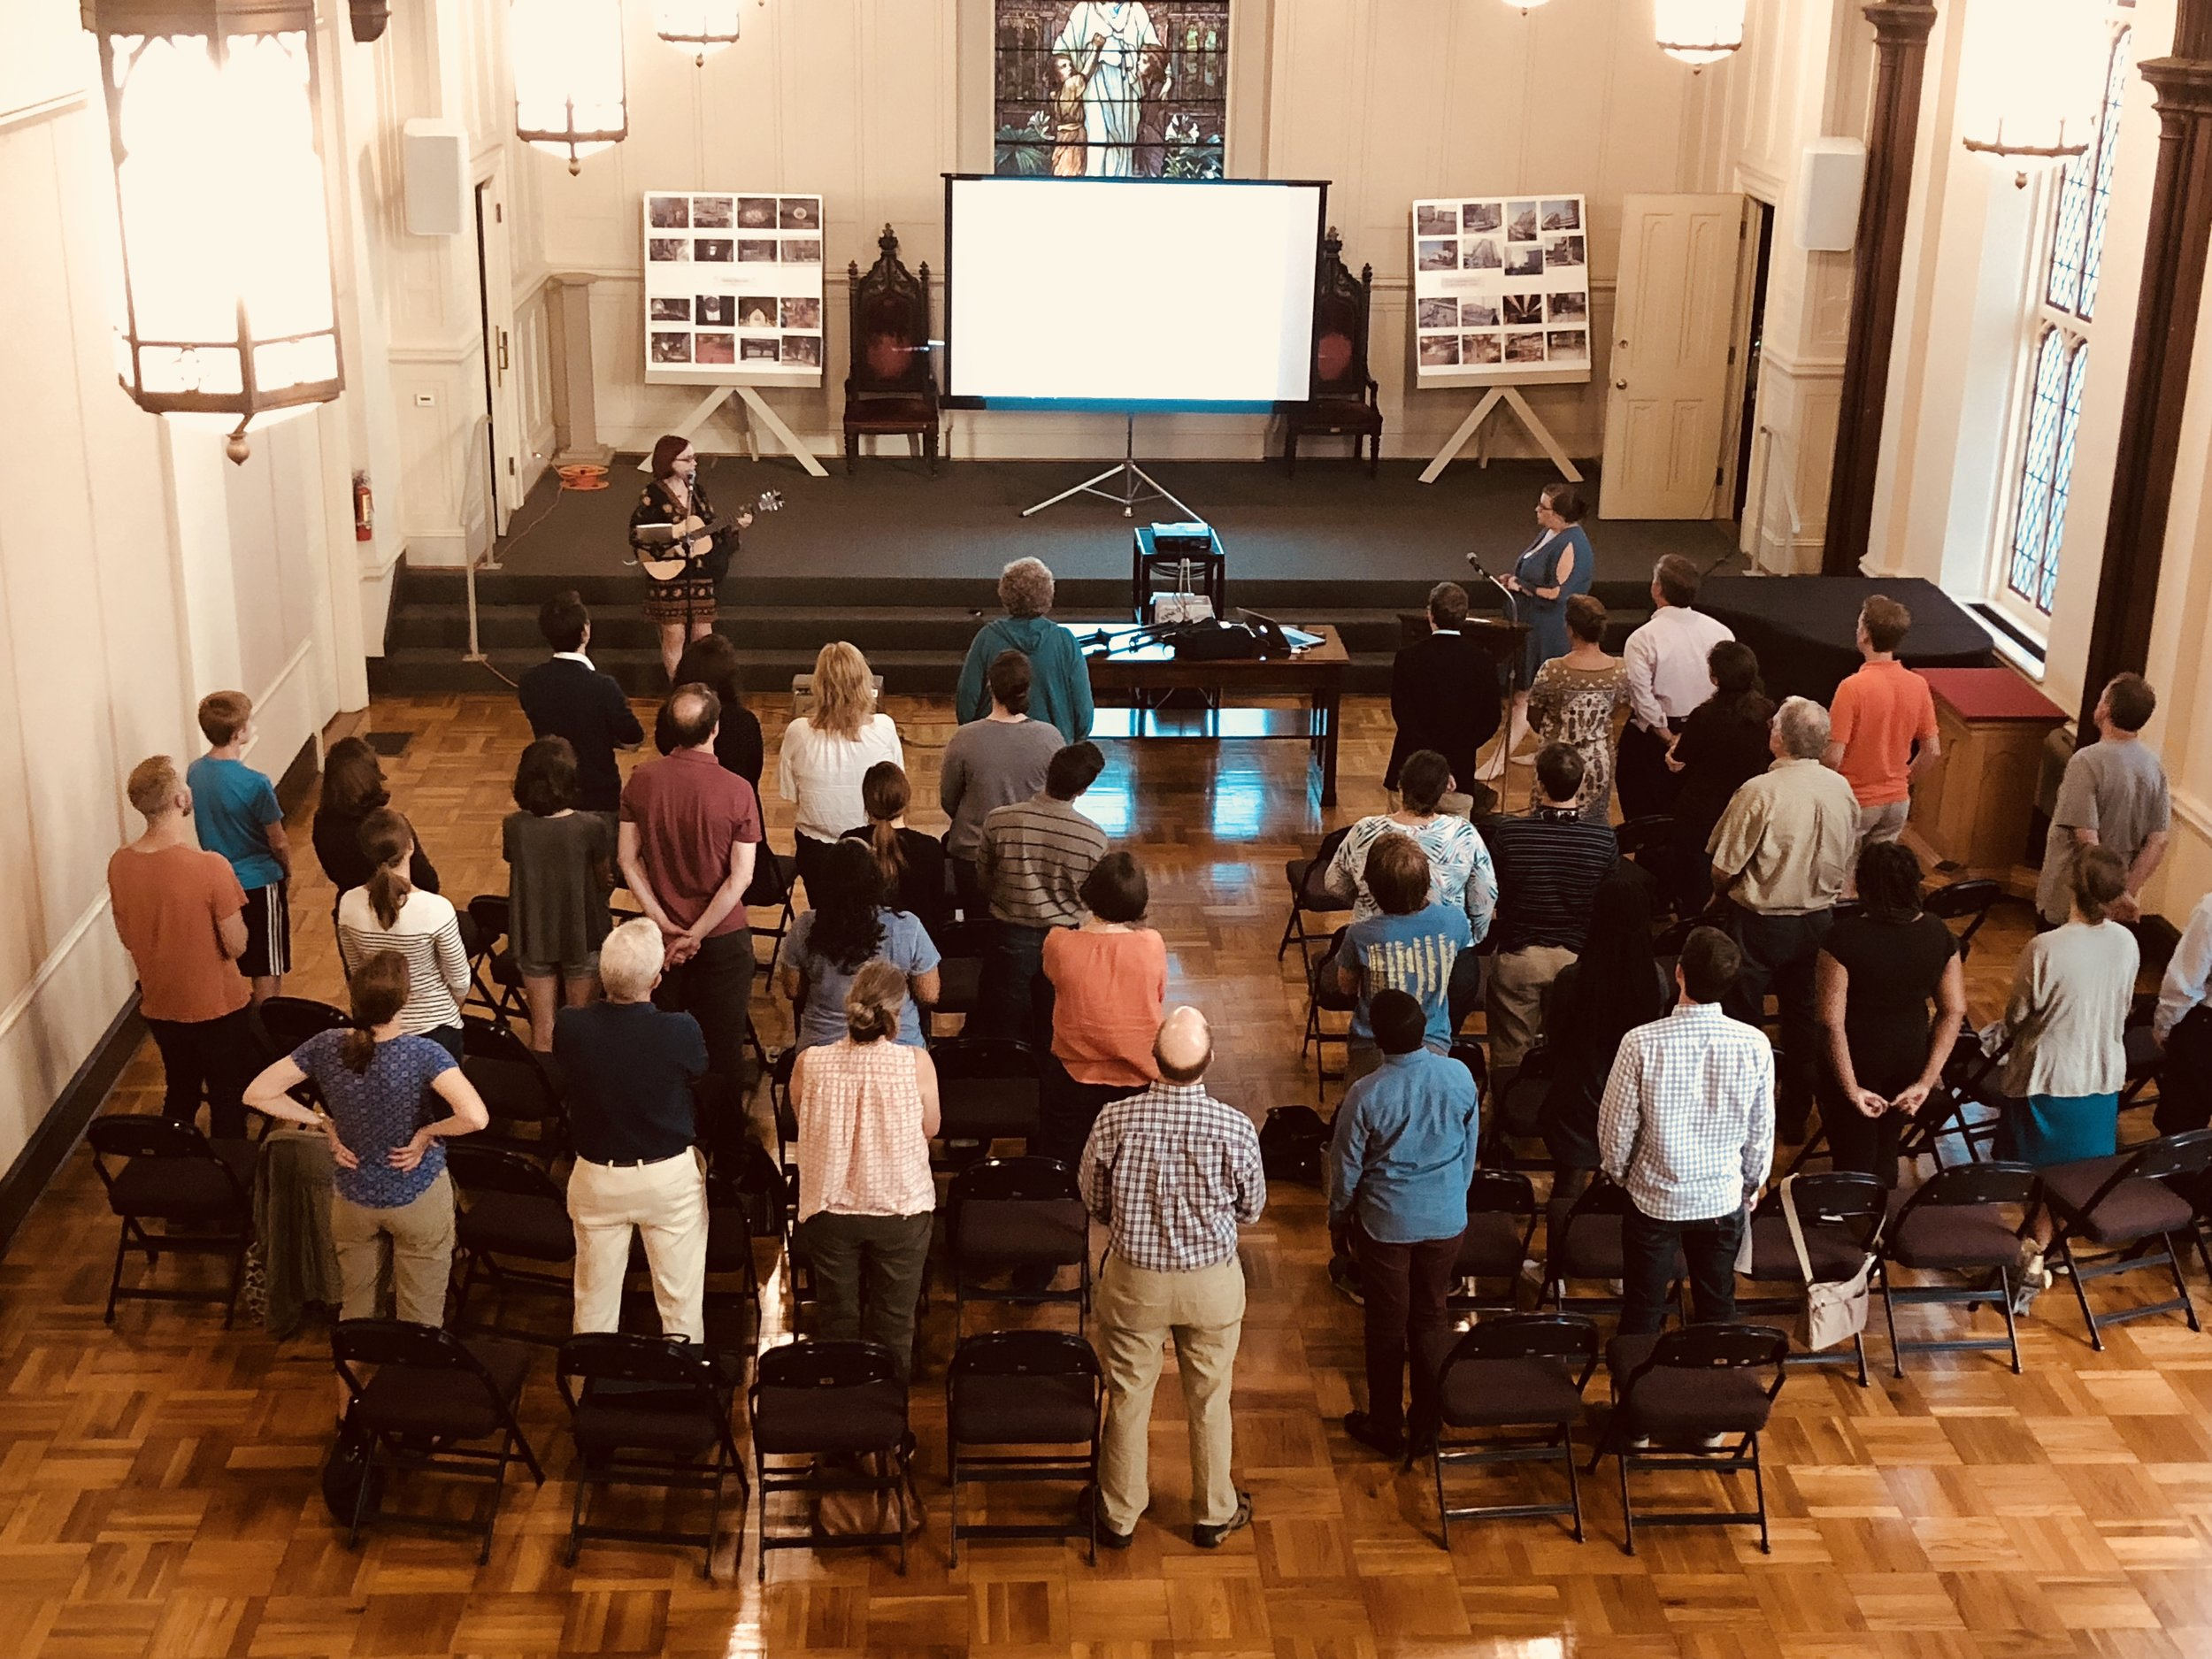 Lots of energy and meaningful worship - October 15 at 5pm.